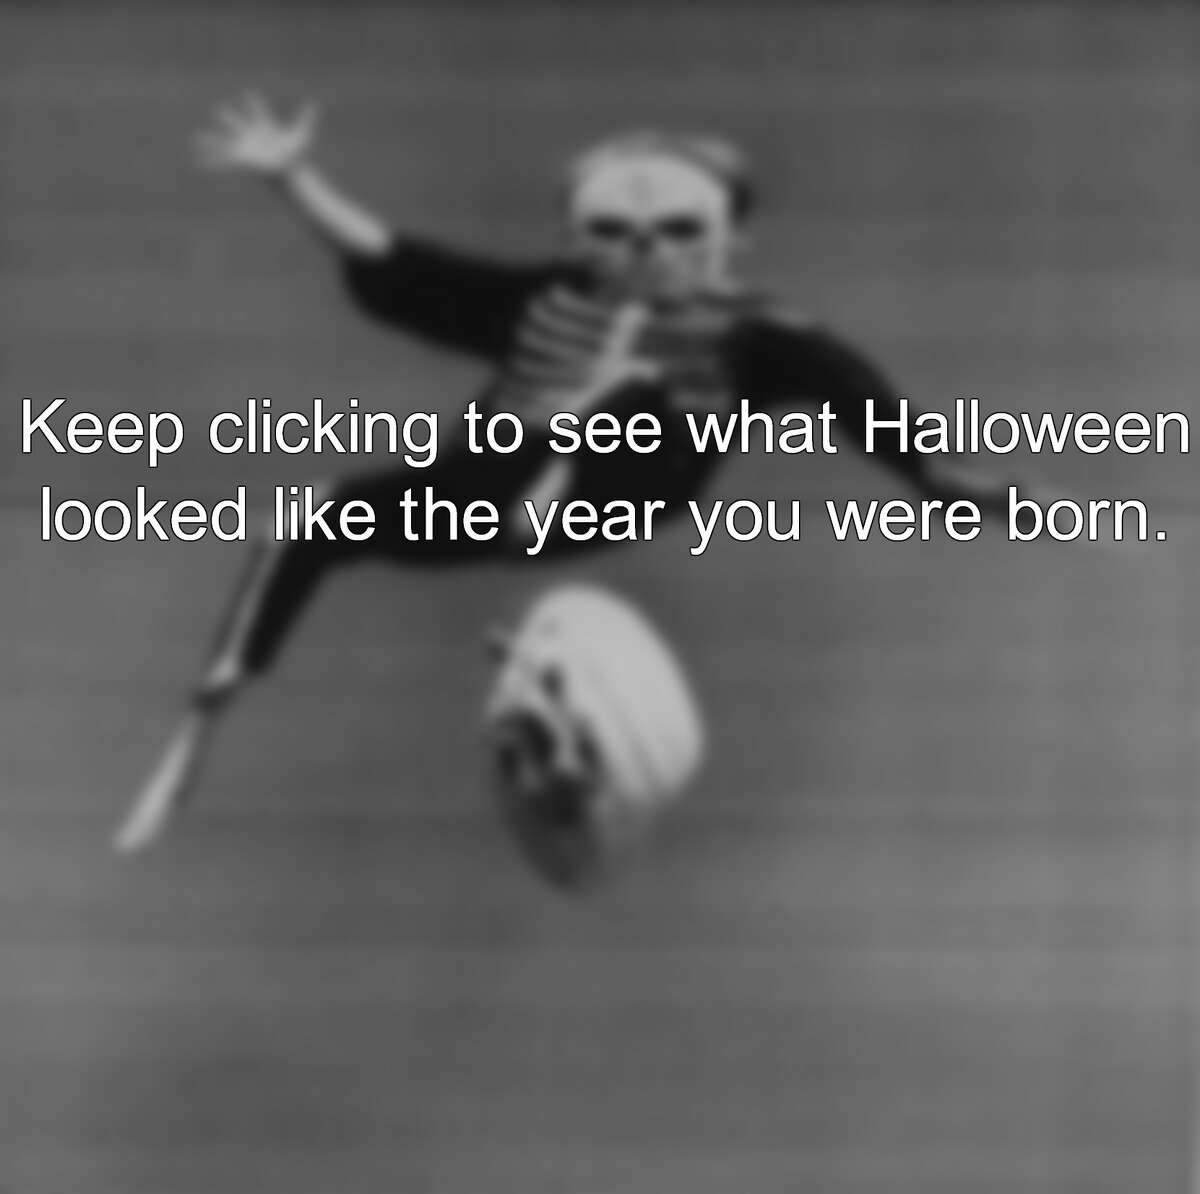 Keep clicking to see what Halloween looked like the year you were born.